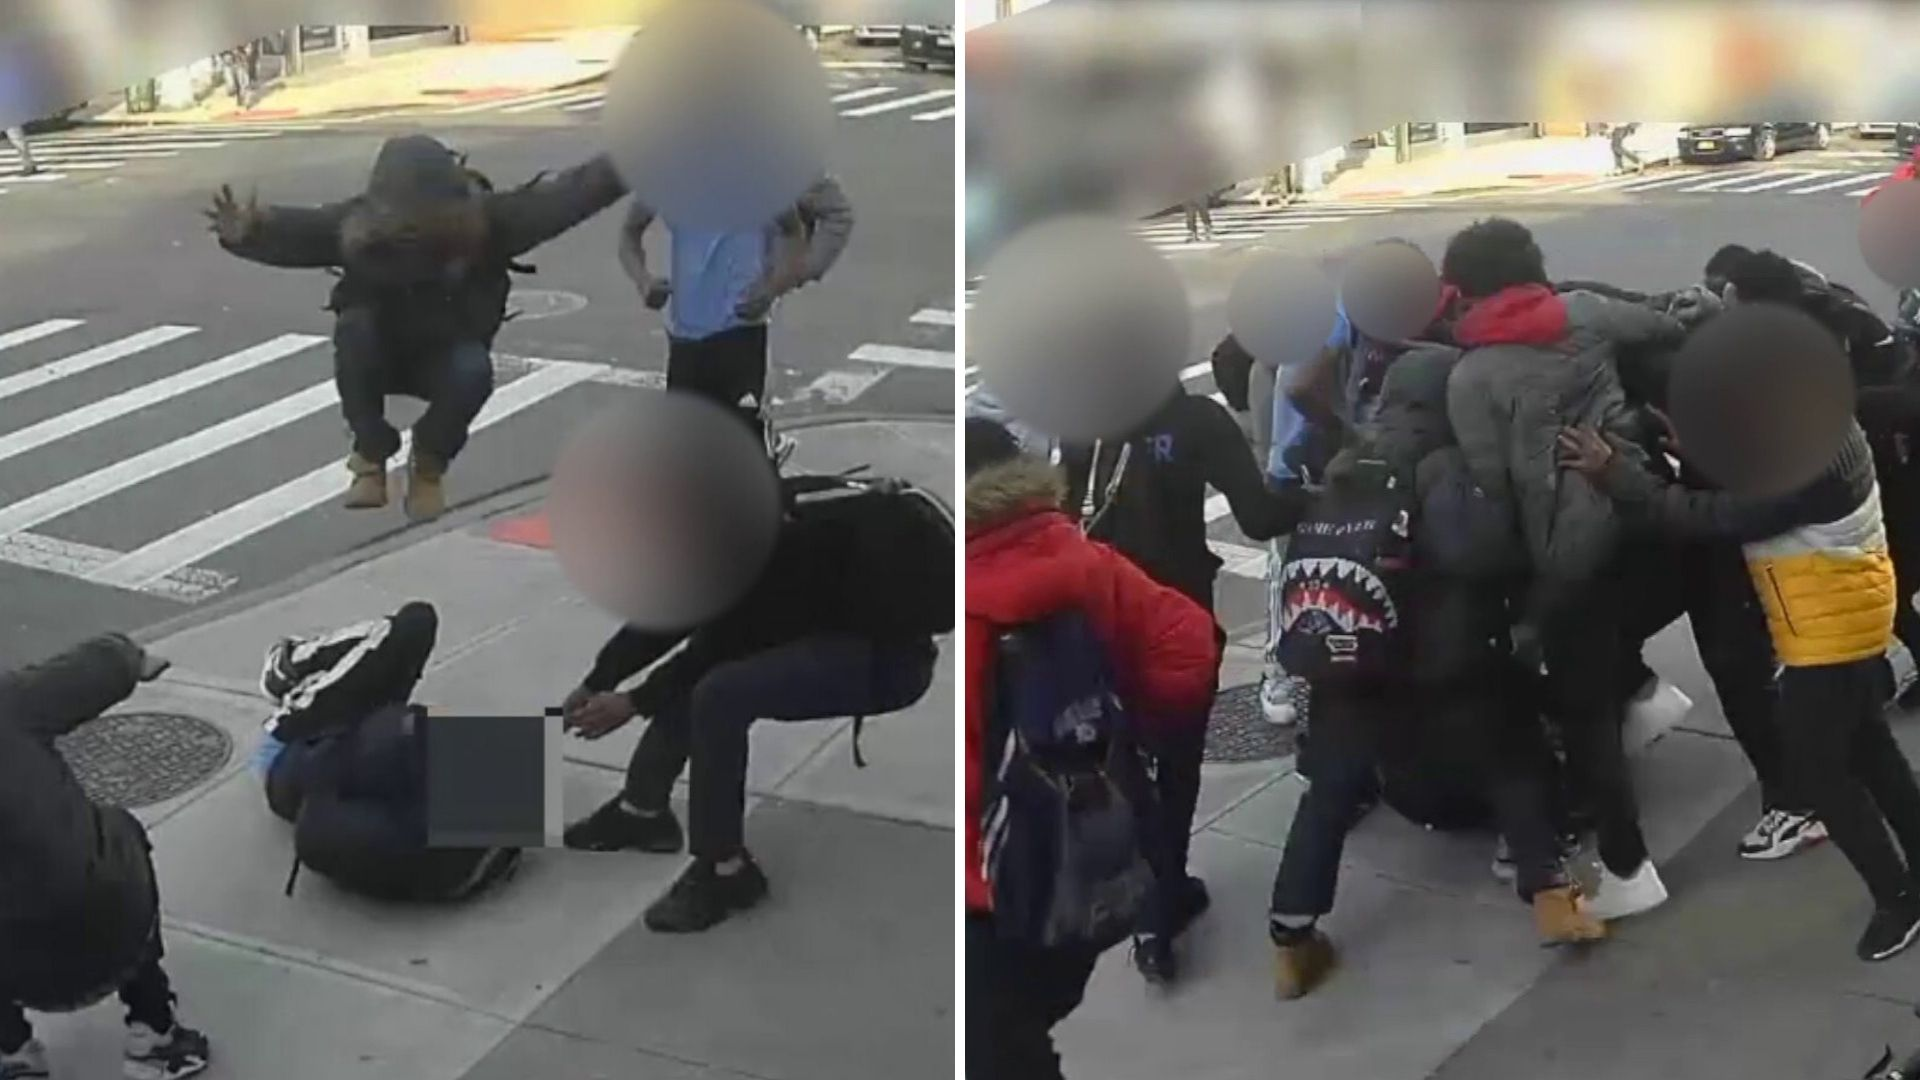 Group viciously attack, robs 15-year-old girl in Brooklyn: police